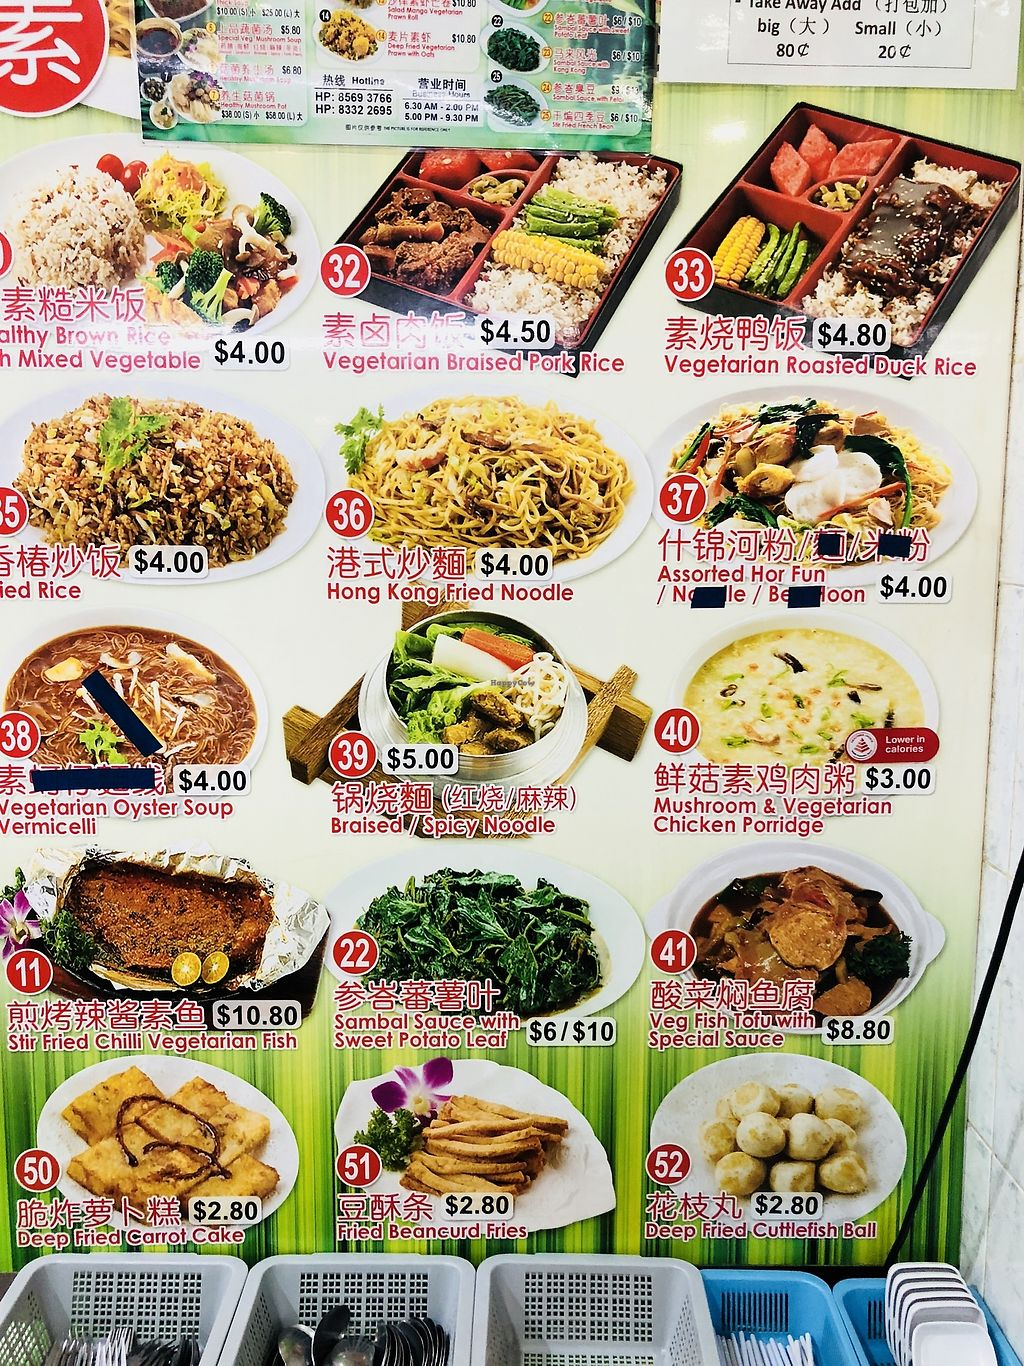 """Photo of Green Lane Vegetarian Food  by <a href=""""/members/profile/CherylQuincy"""">CherylQuincy</a> <br/>Menu board <br/> February 9, 2018  - <a href='/contact/abuse/image/79480/356912'>Report</a>"""